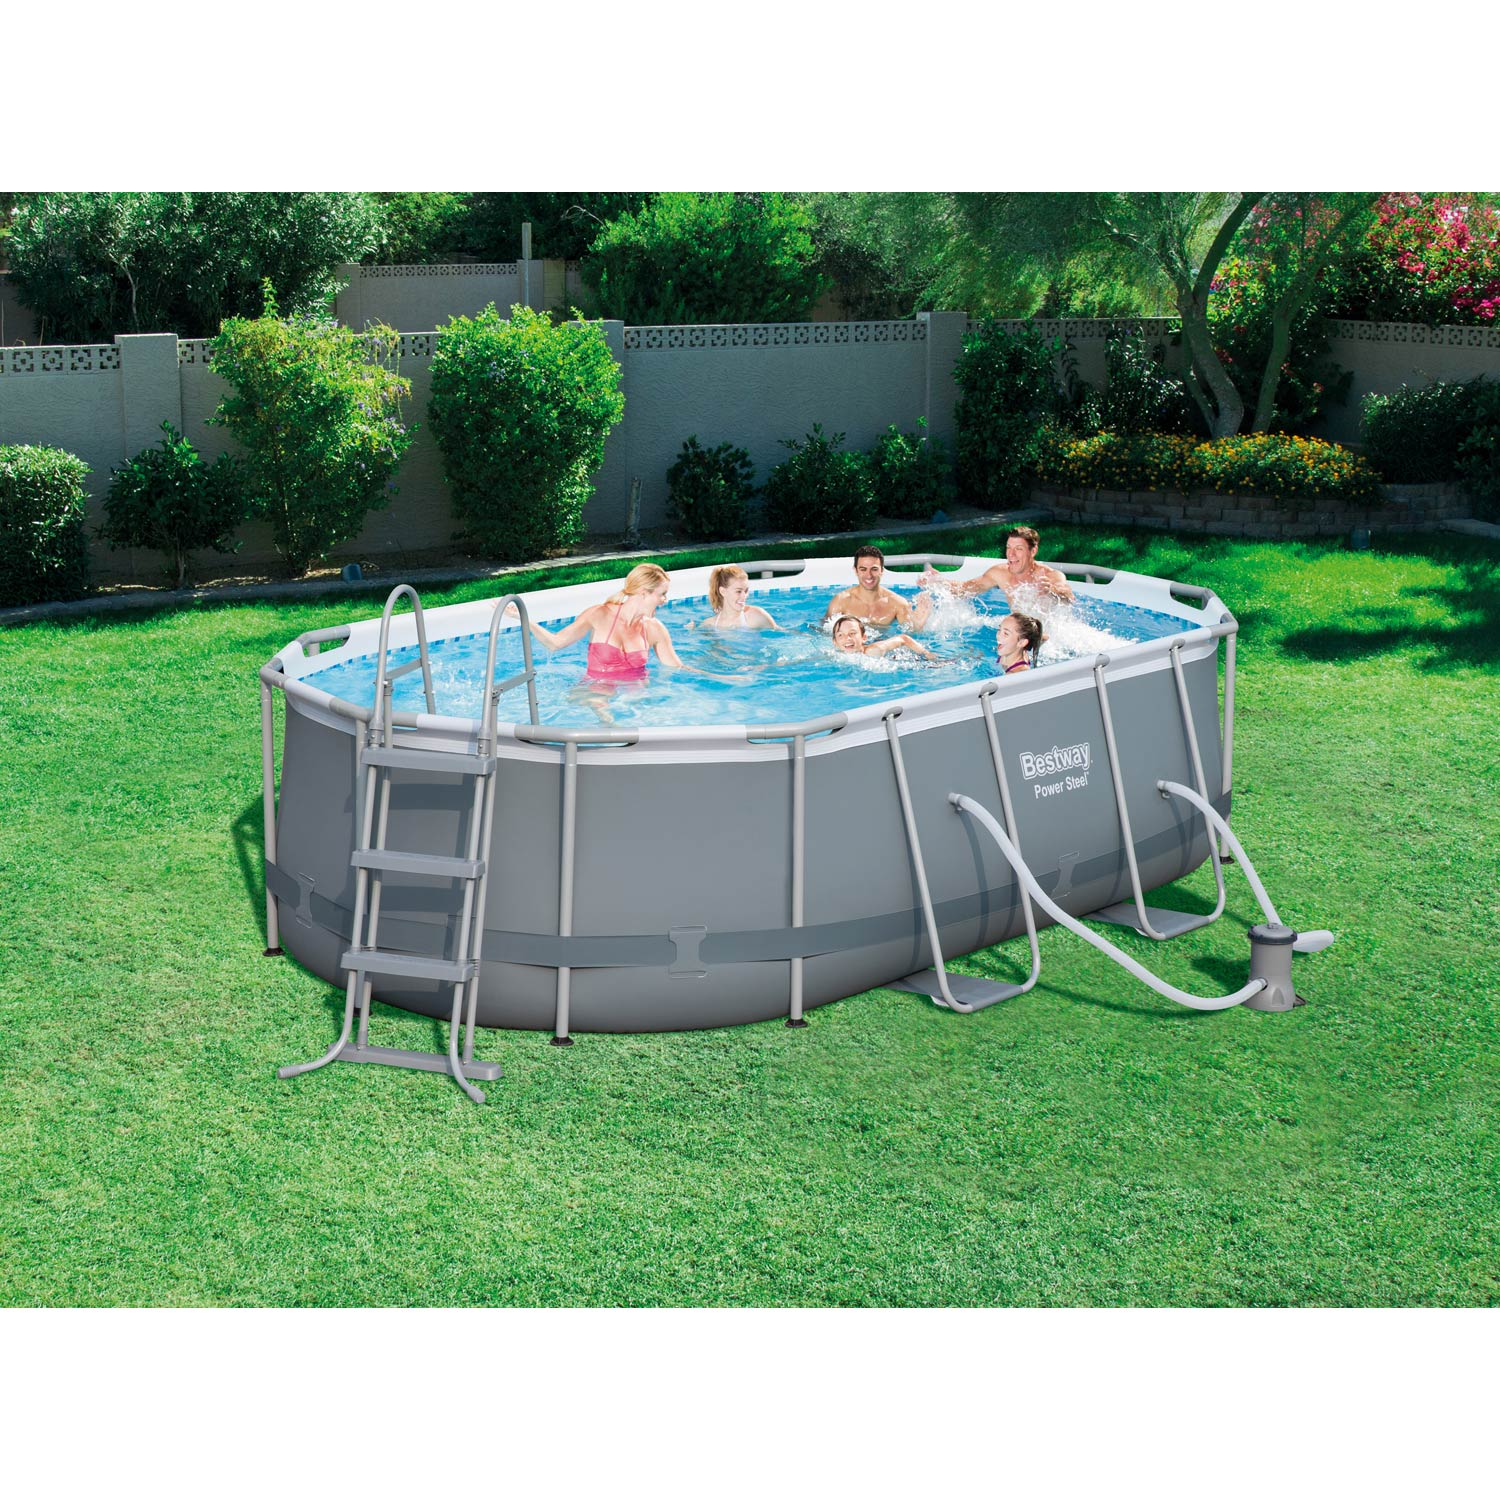 Piscine hors sol autoportante tubulaire bestway l x for Aspirateur piscine hors sol jilong